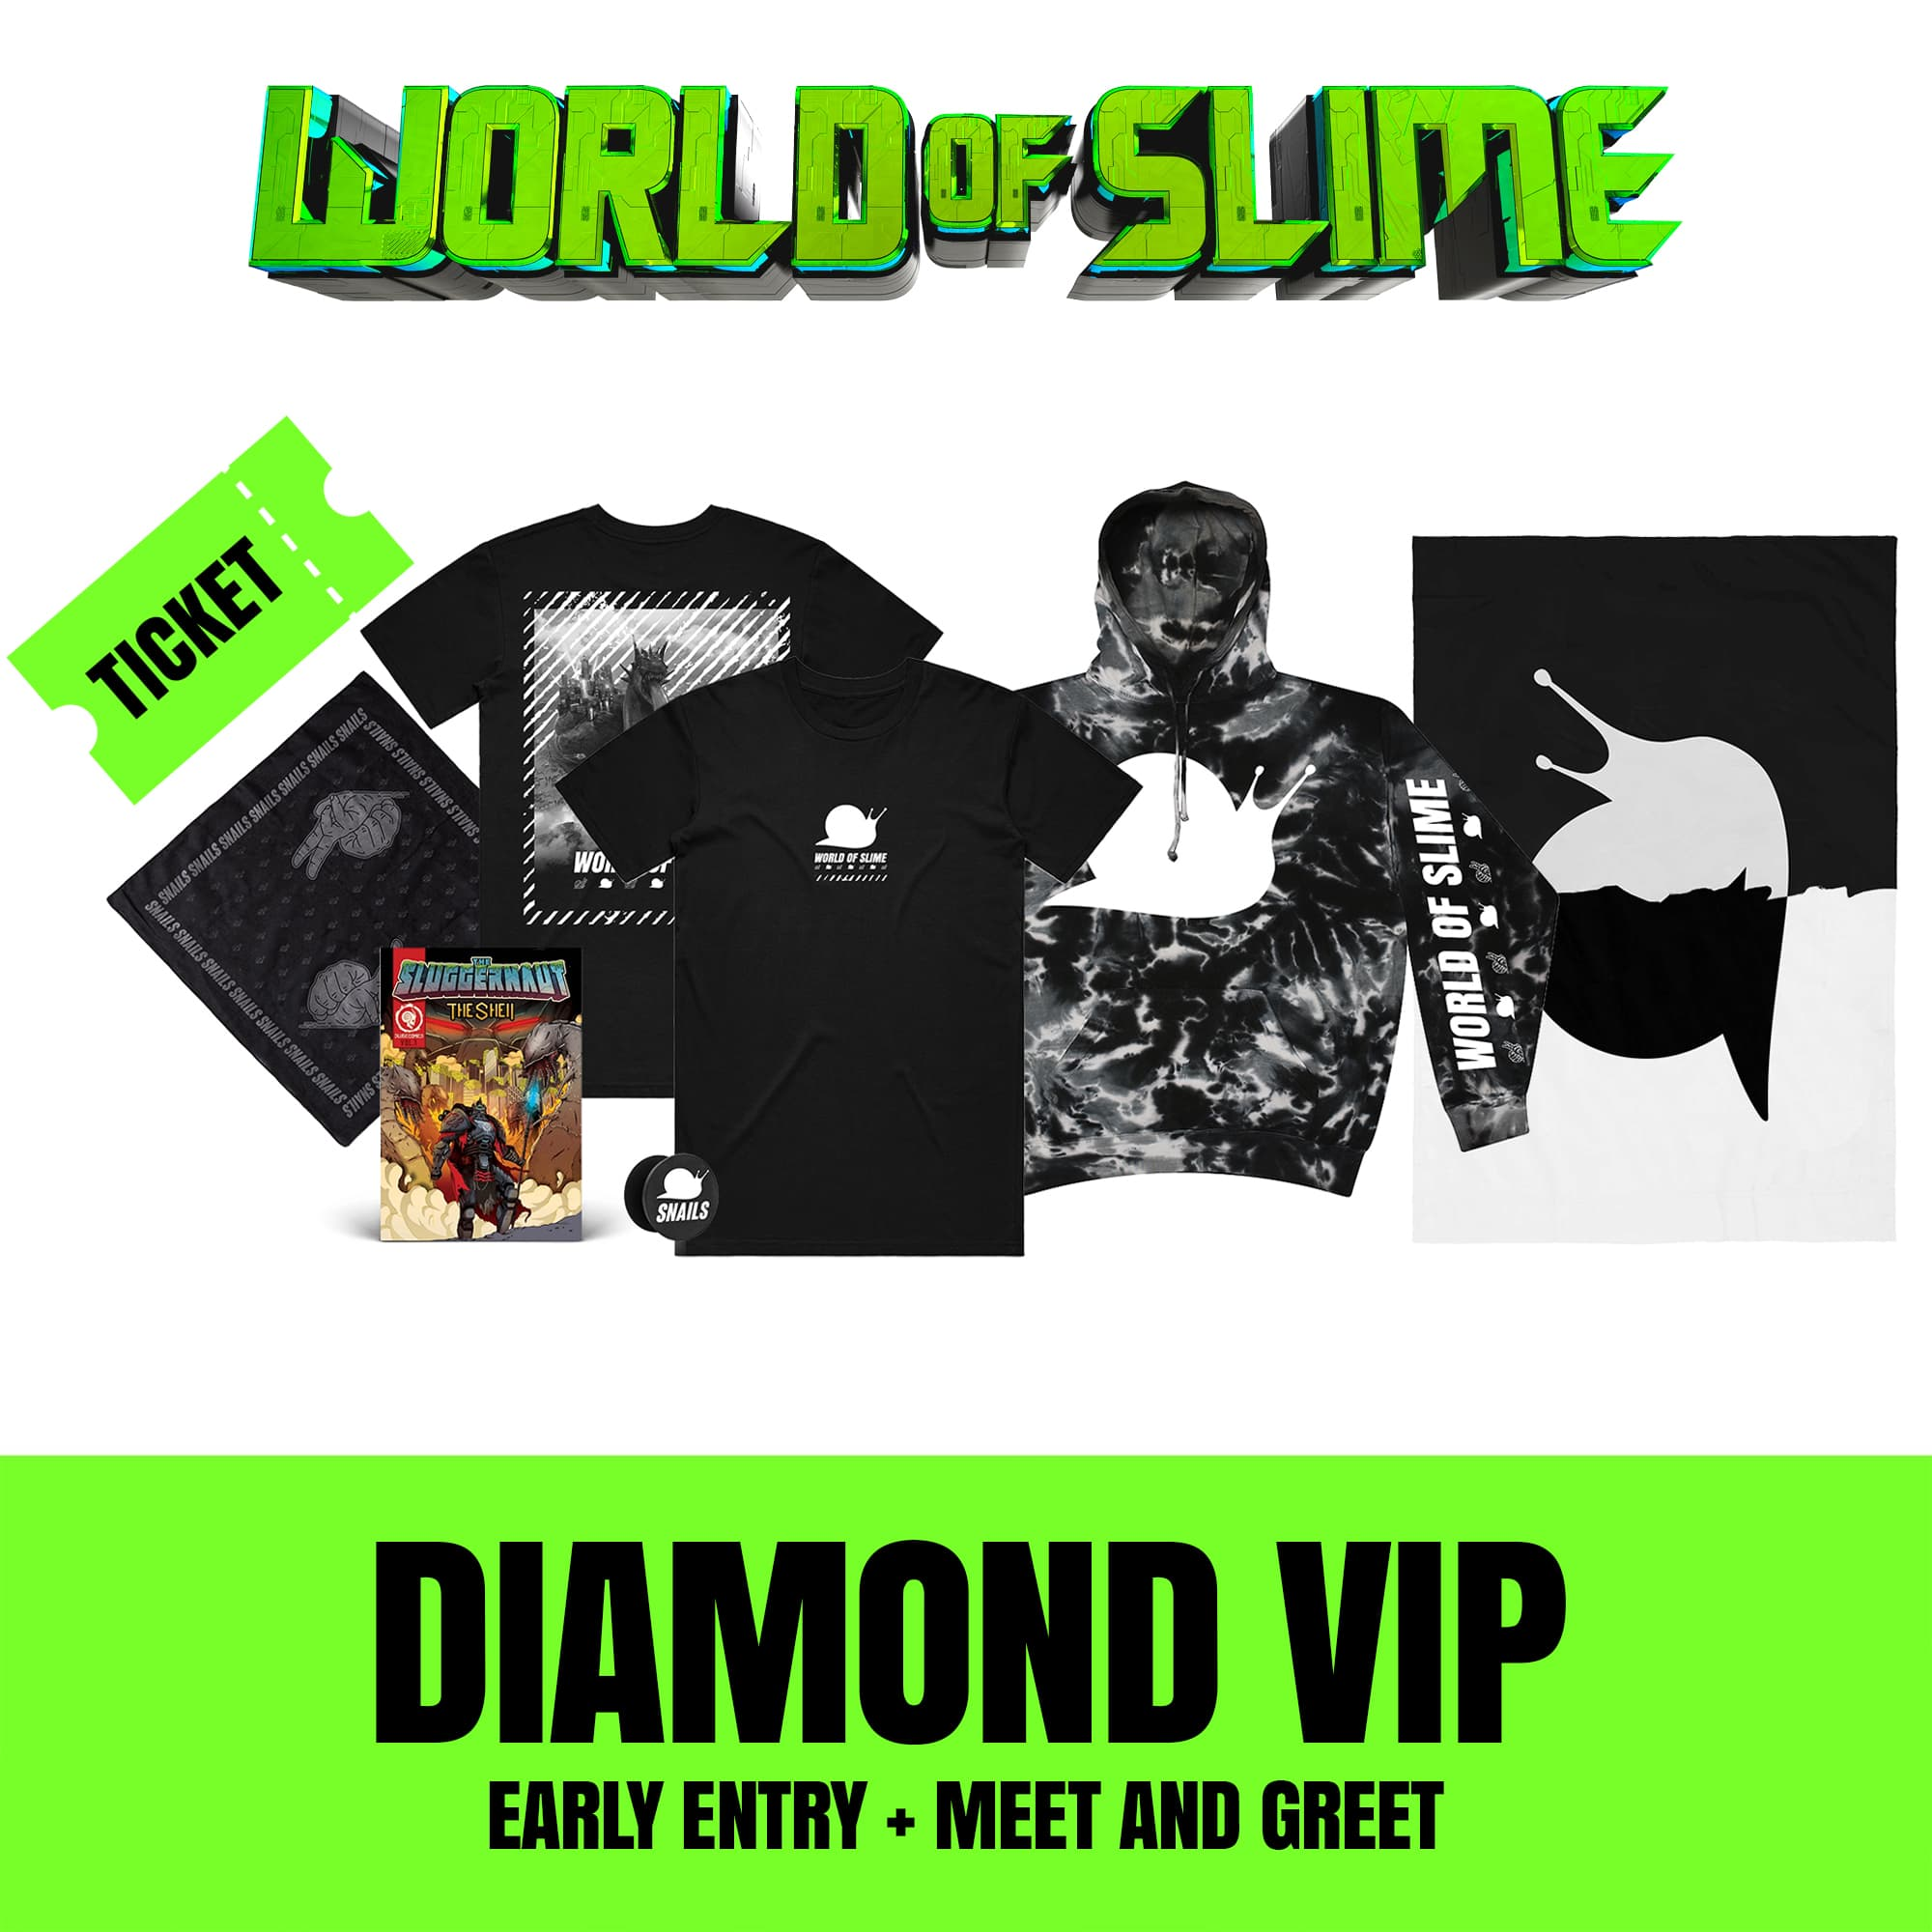 World Of Slime Tour - Albuquerque, NM - 11/25